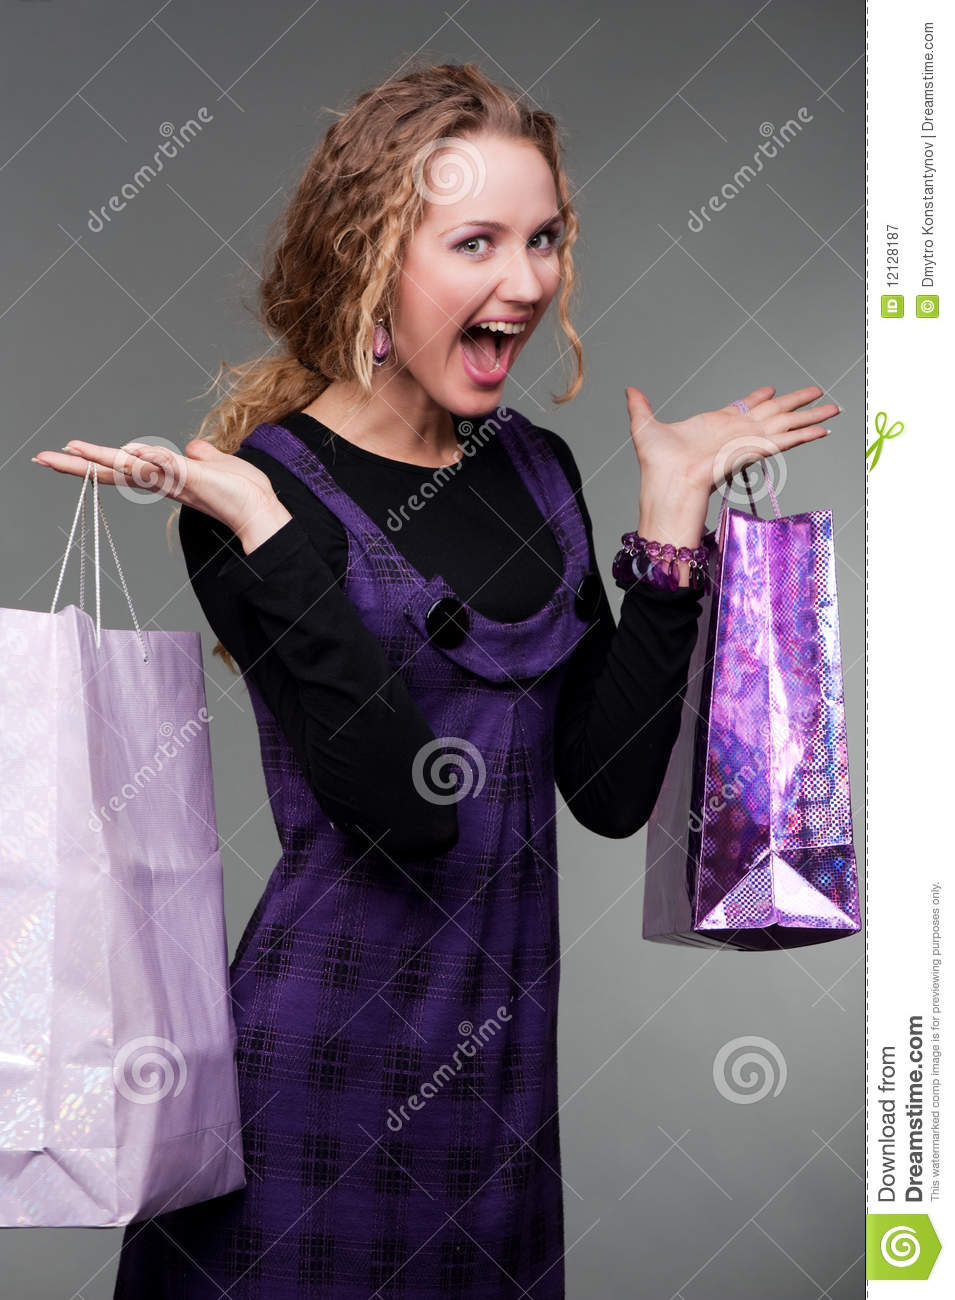 Effects of shopping addiction essay